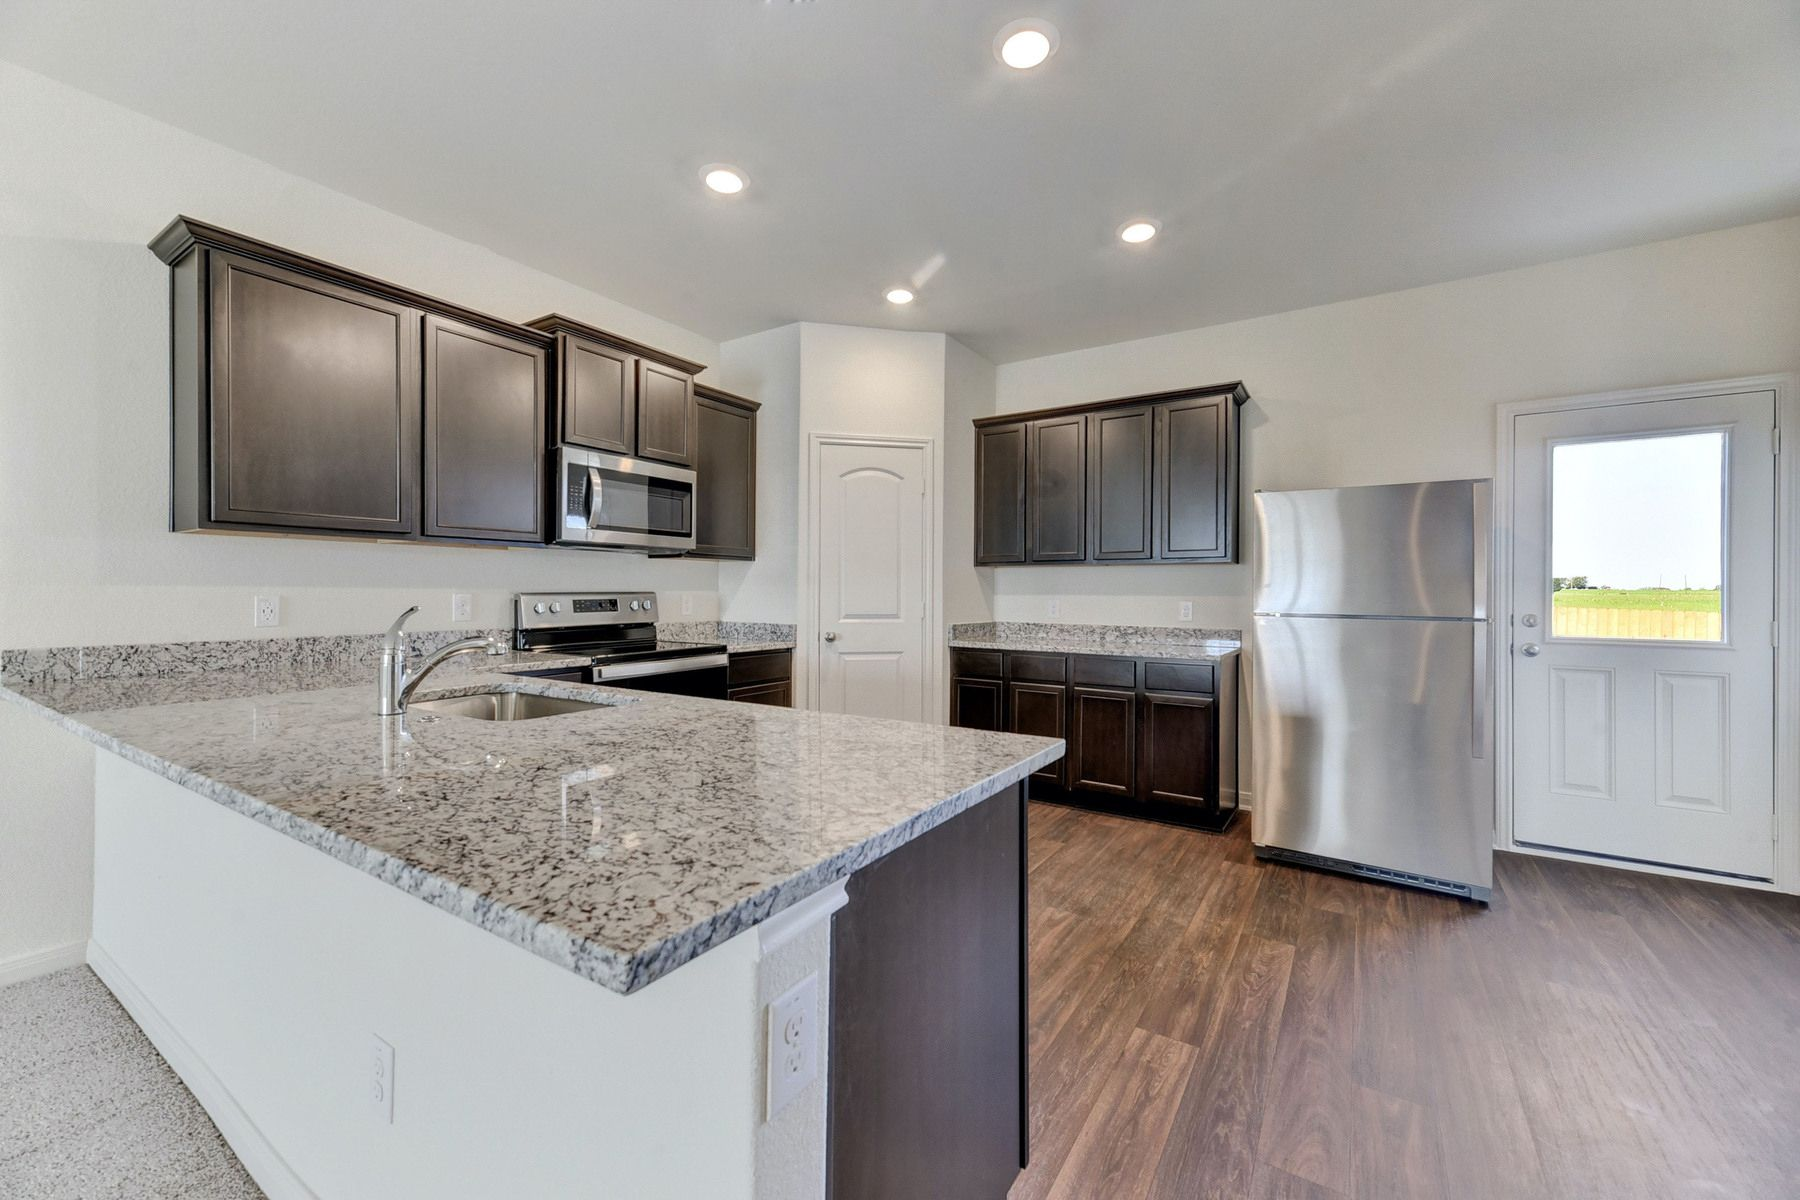 The Travis by LGI Homes:The kitchen comes with a full suite of energy-efficient appliances!